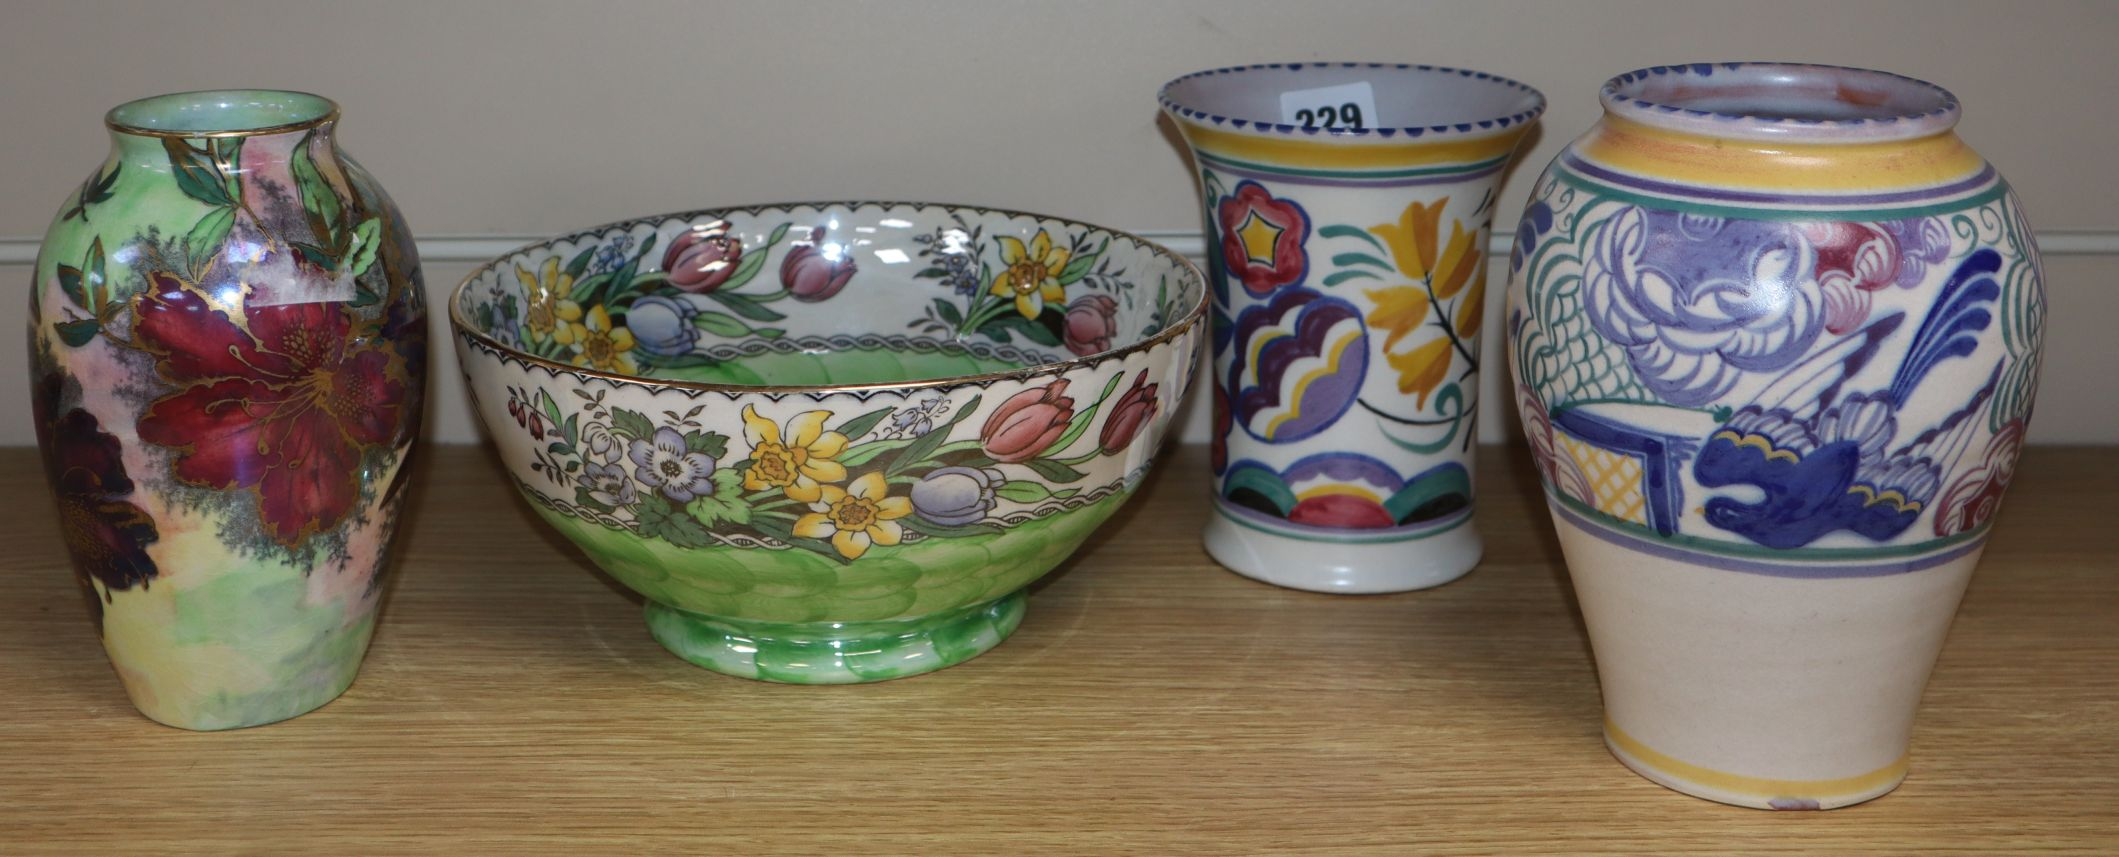 Lot 229 - Two Poole vases and two pieces of Maling ware